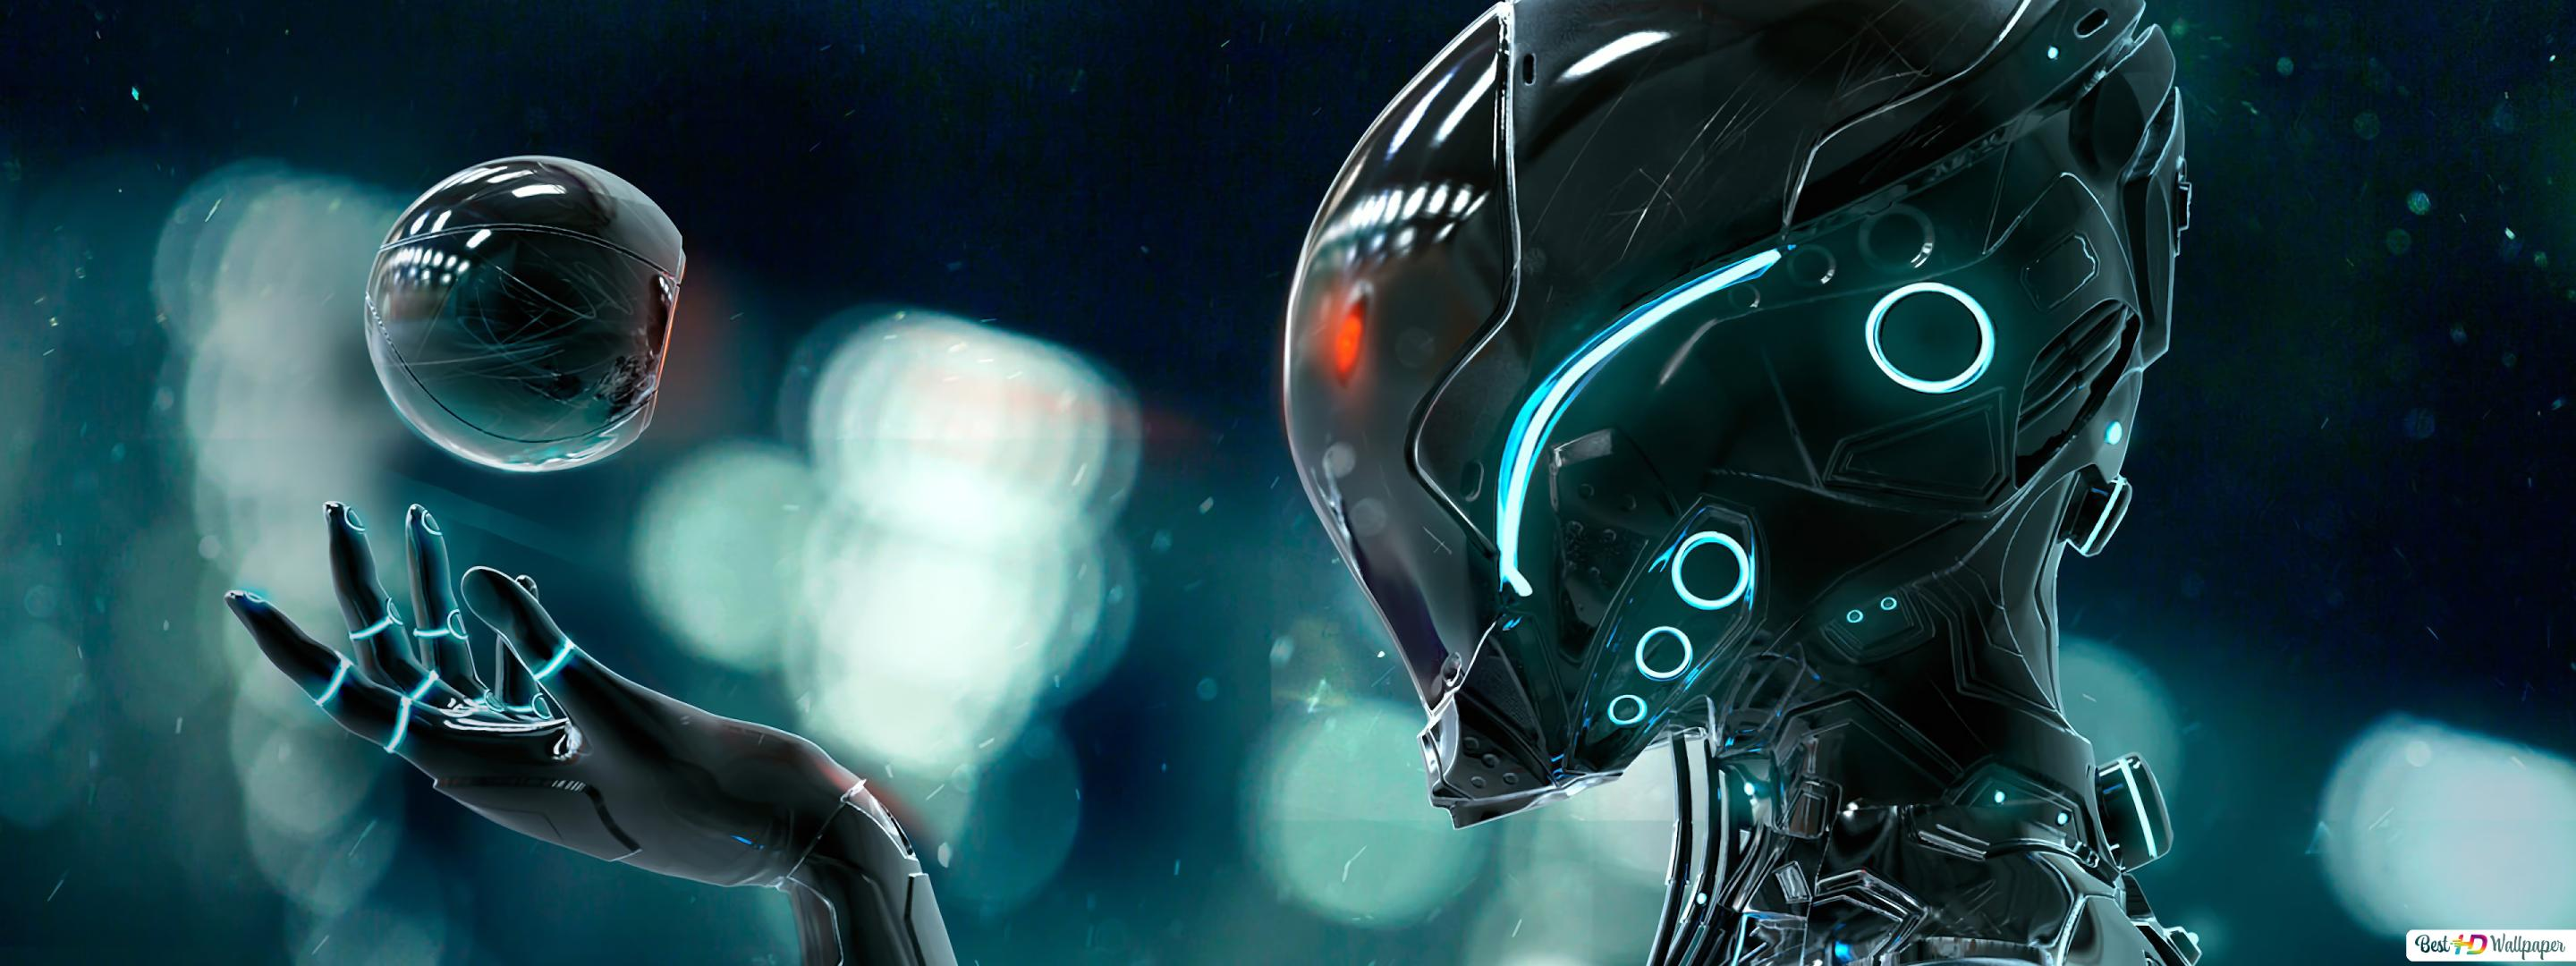 Scifi Android Robot Hd Wallpaper Download